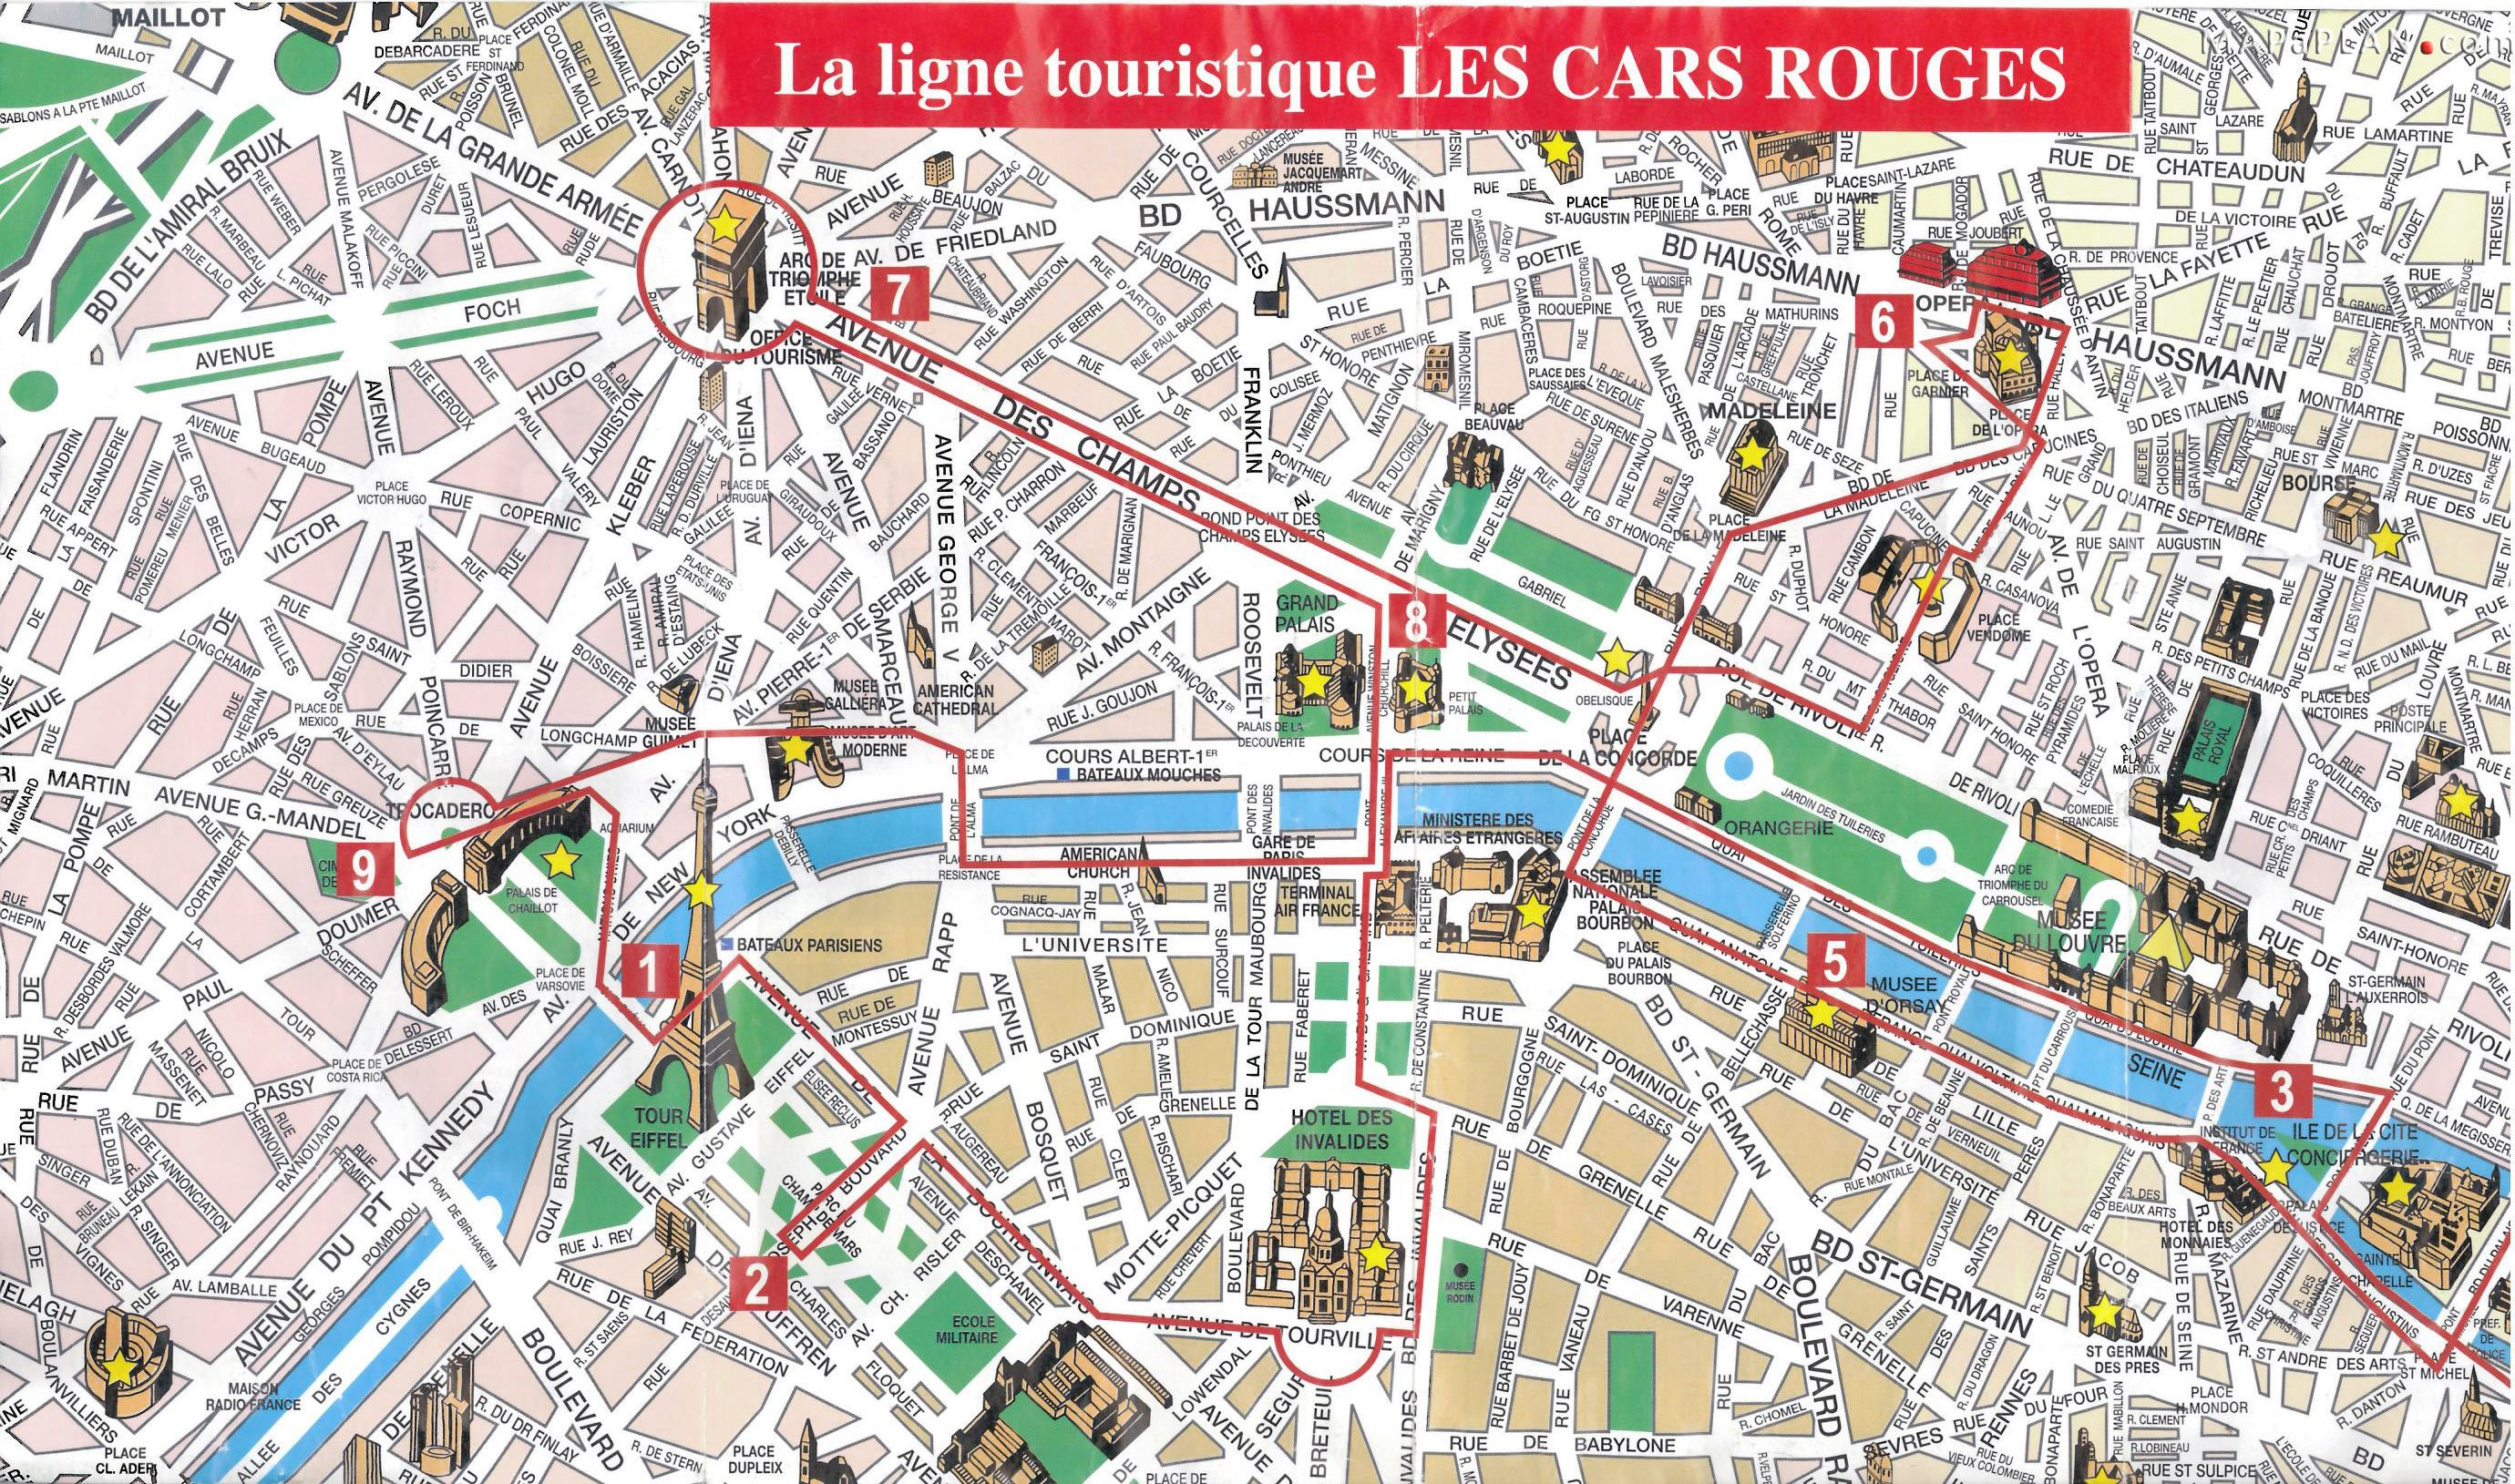 Les id    es de maison      map travel route planner   Maison Nous essaierons toujours d afficher des images avec une r    solution map  travel route planner  map travel route planner peut     tre une source  d inspiration